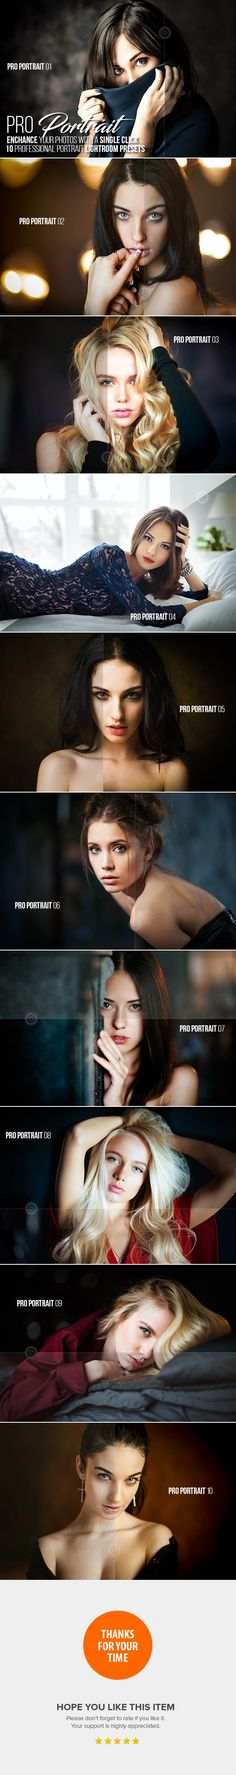 10 Portrait Lightroom Presets Professional & Modern for Photographers and Designers. Each preset has been crafted to look great with a wide variety of images. In many instances you will be able to get a great result with a single click.